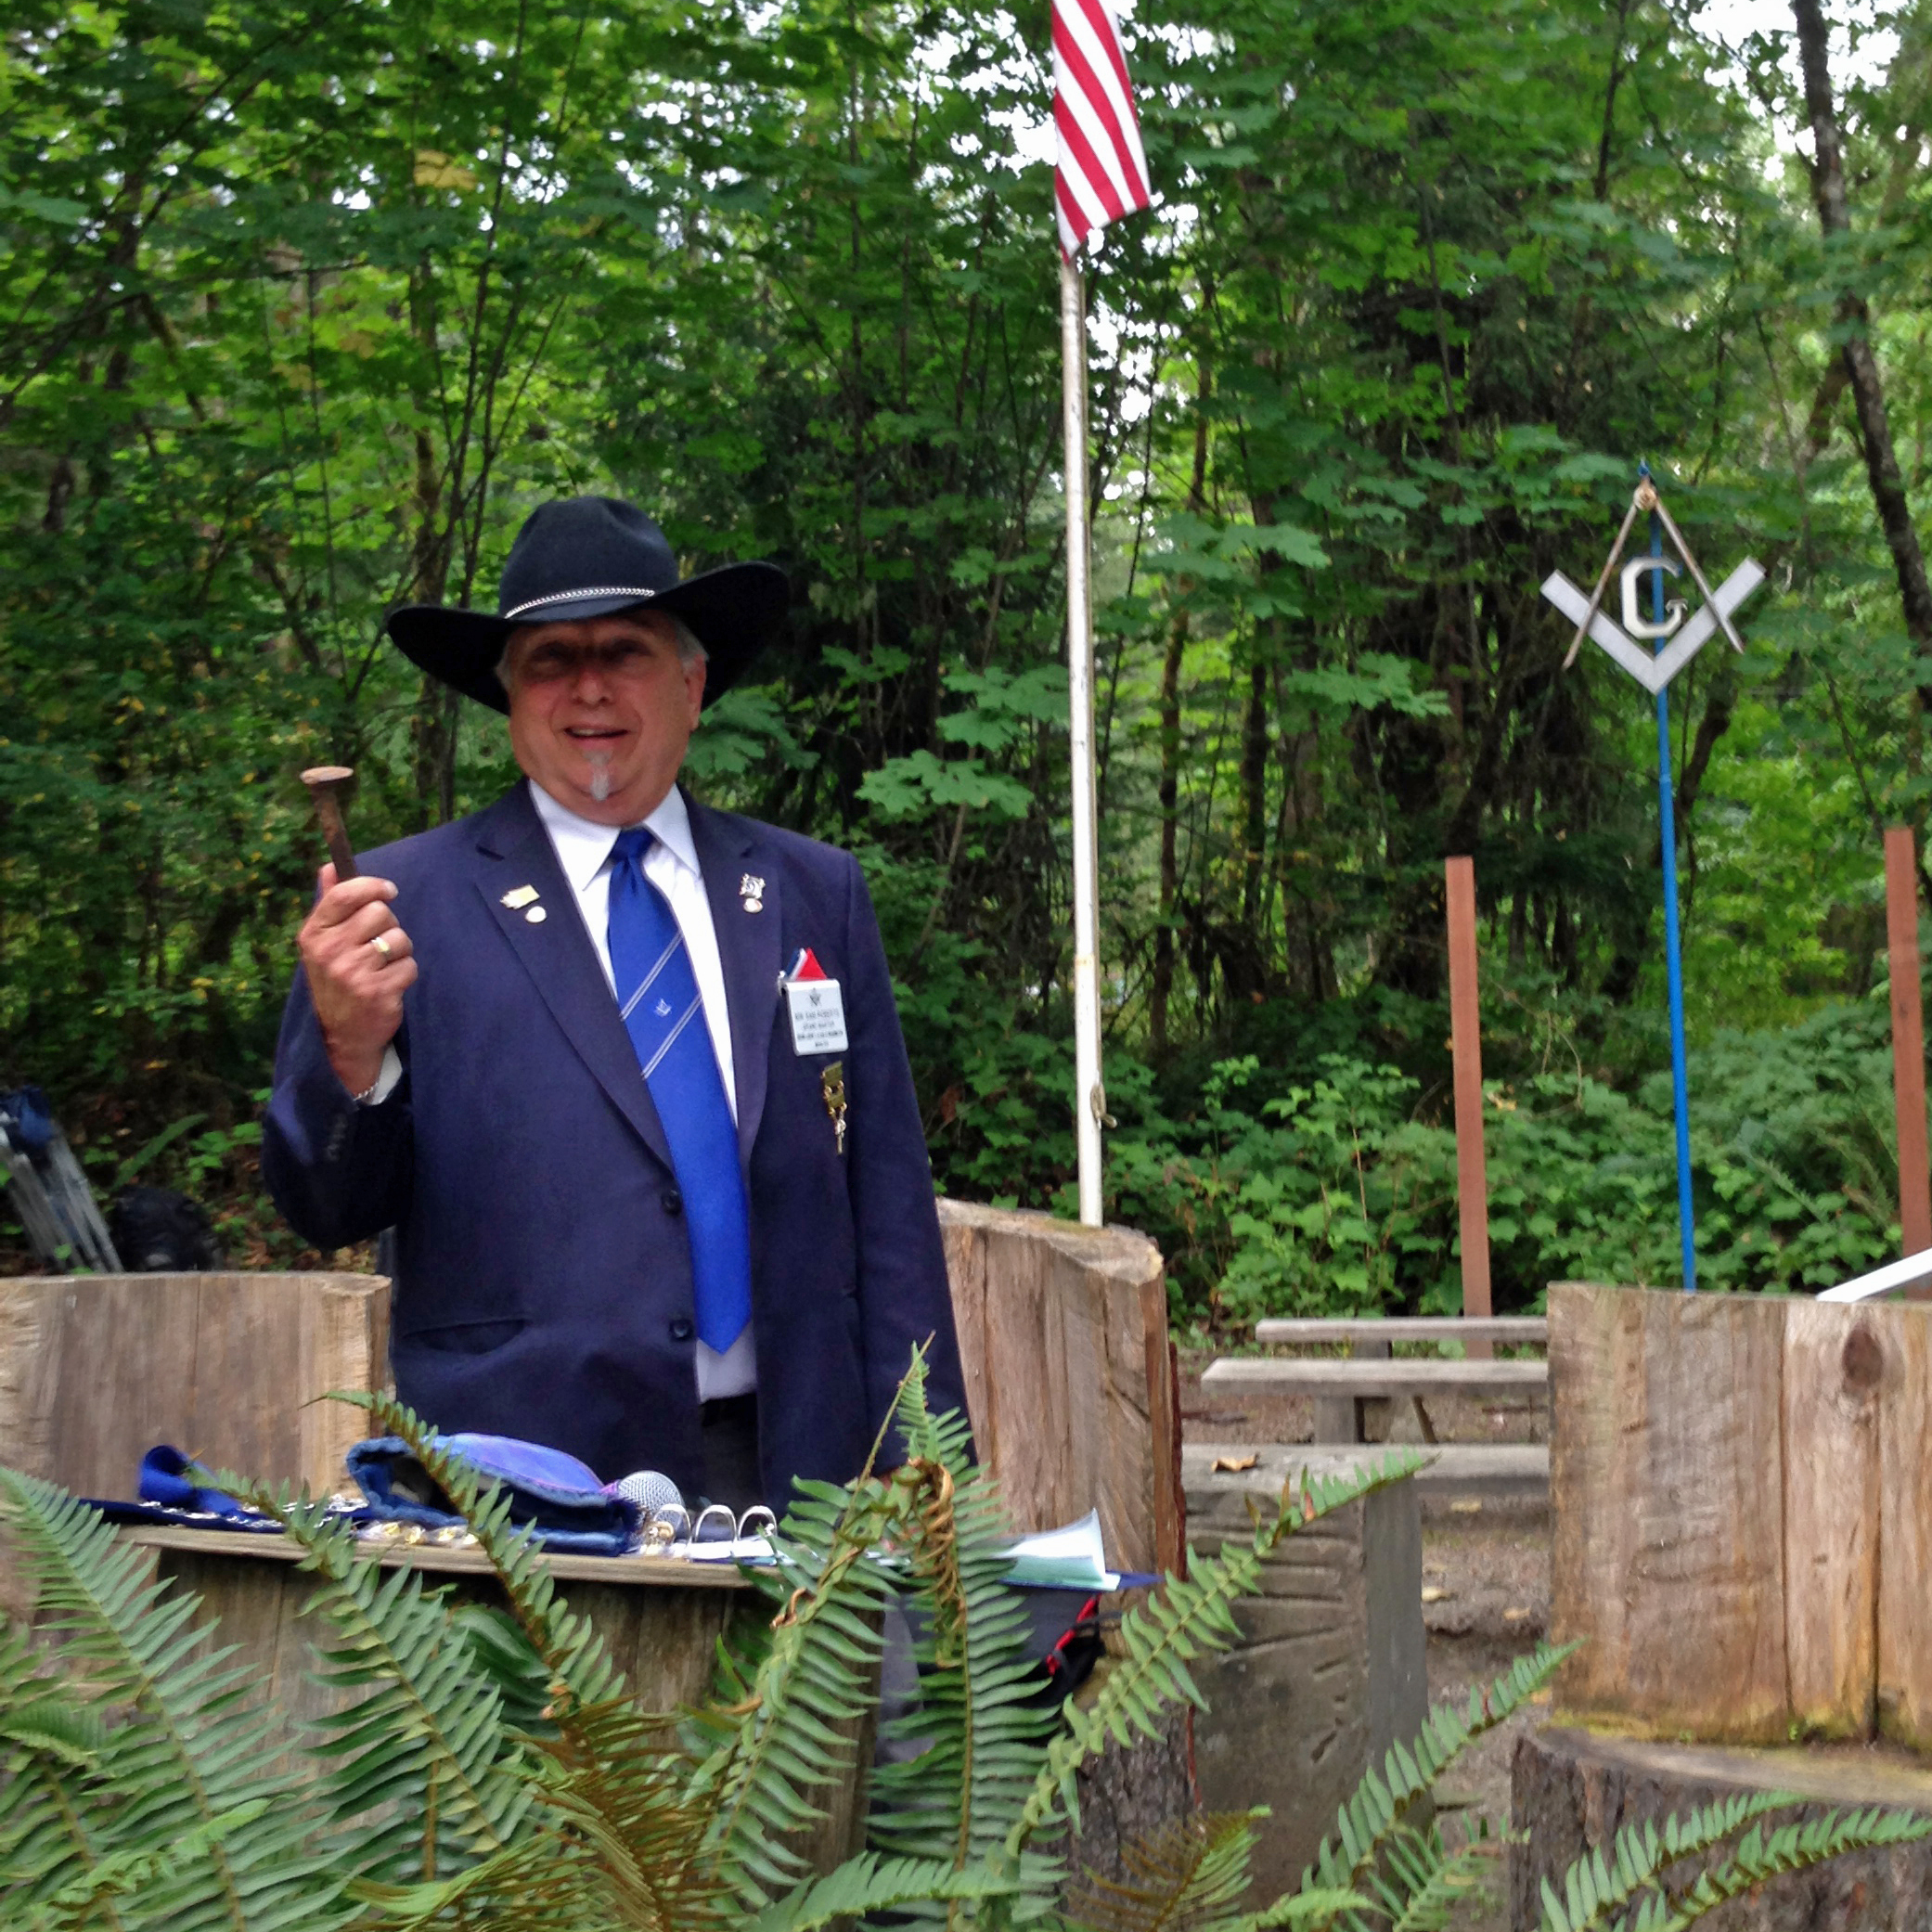 Sam Roberts, most worshipful grand master of Washington state, presides over an outdoor ceremony. His wife, Vicky, says she doesn't mind that women can't participate in the Masons' ceremonies.